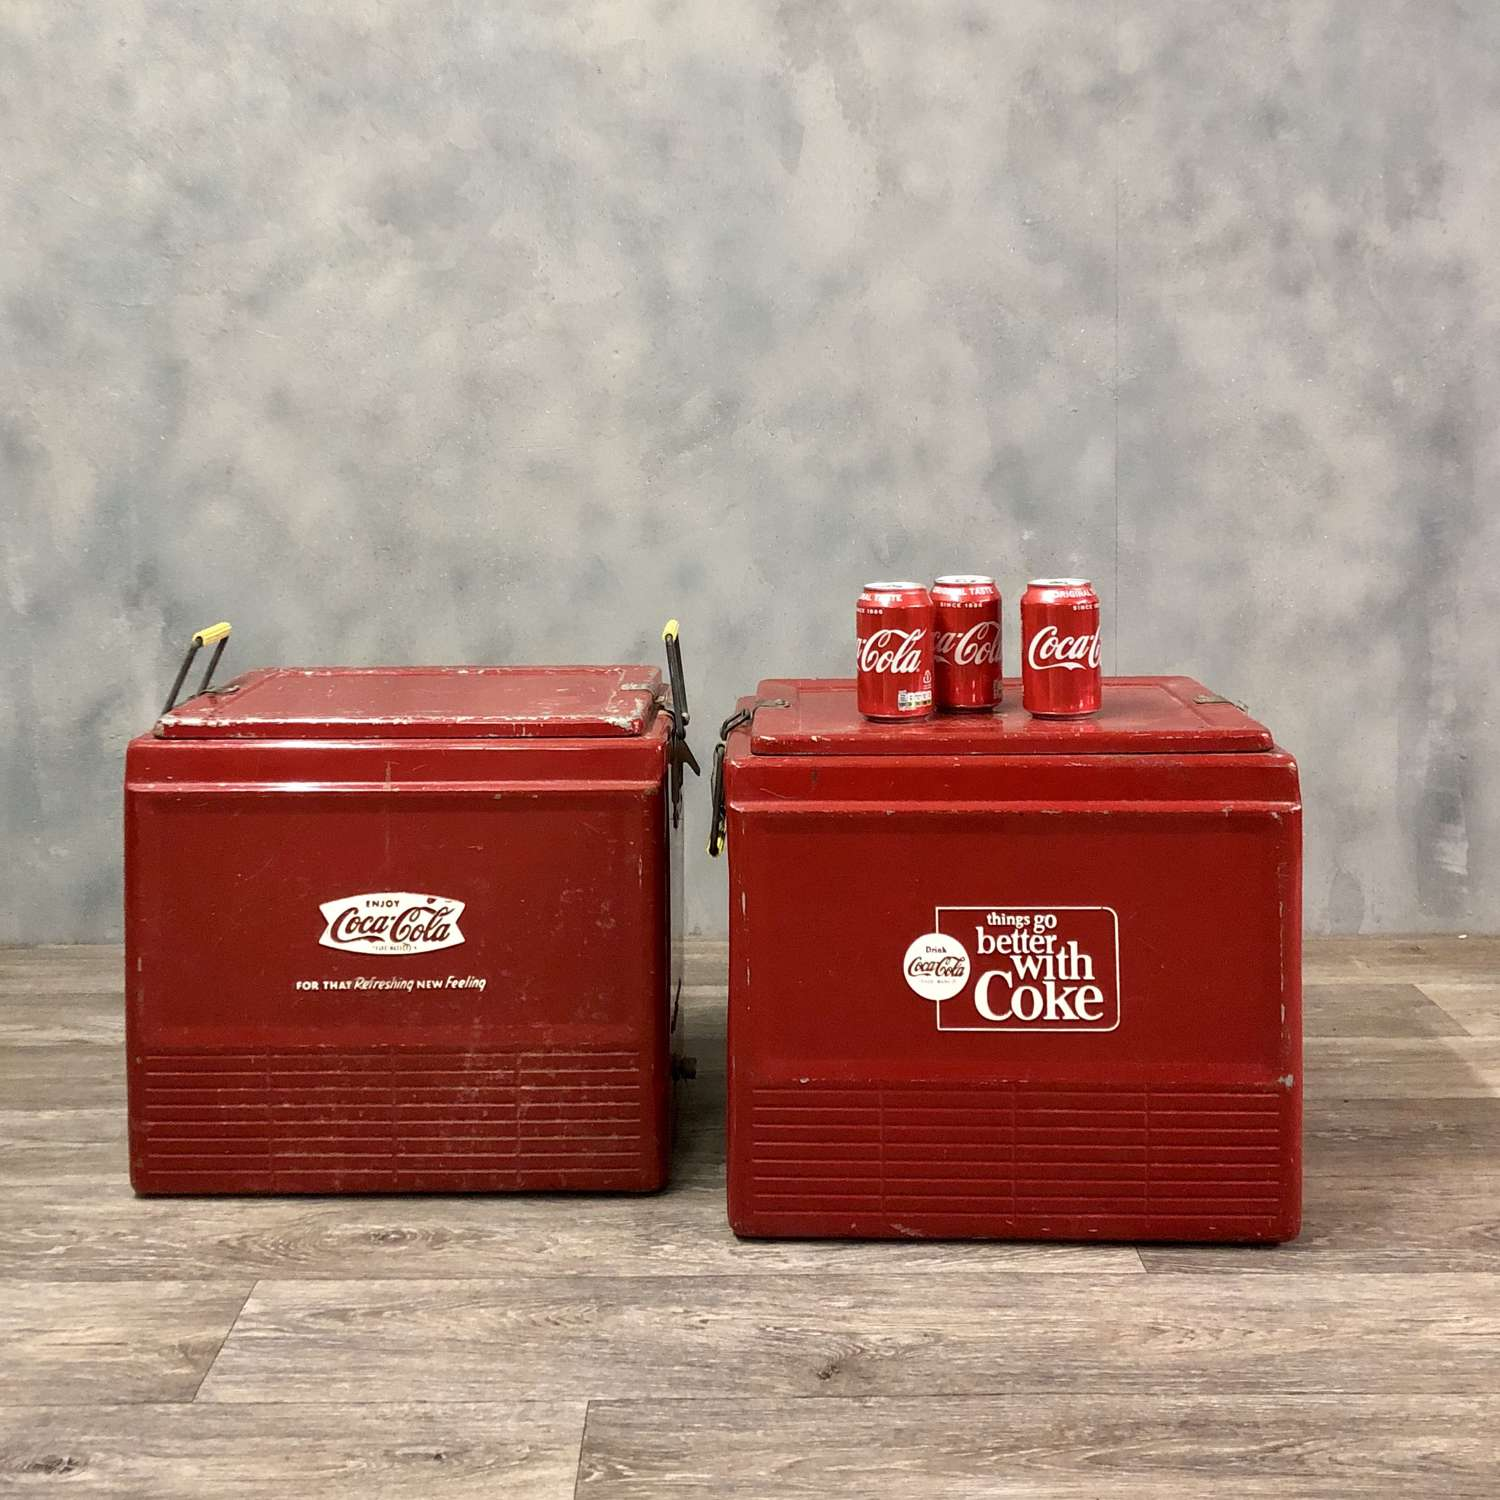 Original 1950s Coca Cola cooler